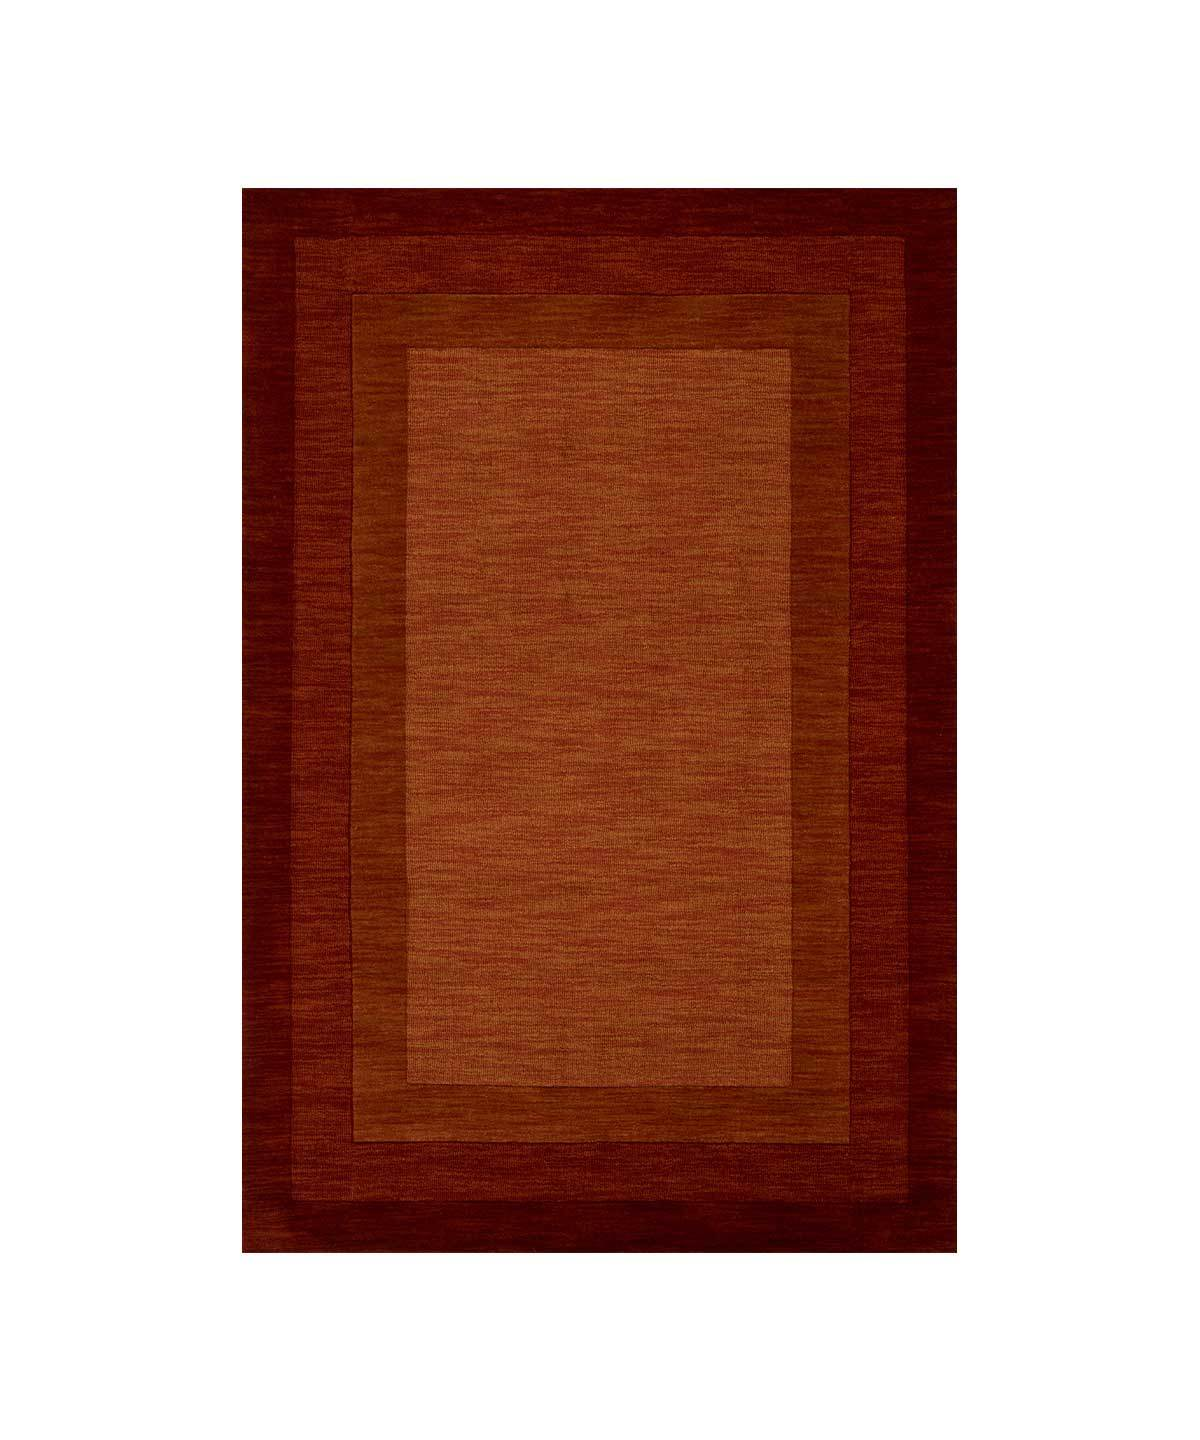 Hamilton Rug in Rust by Loloi | TRNK